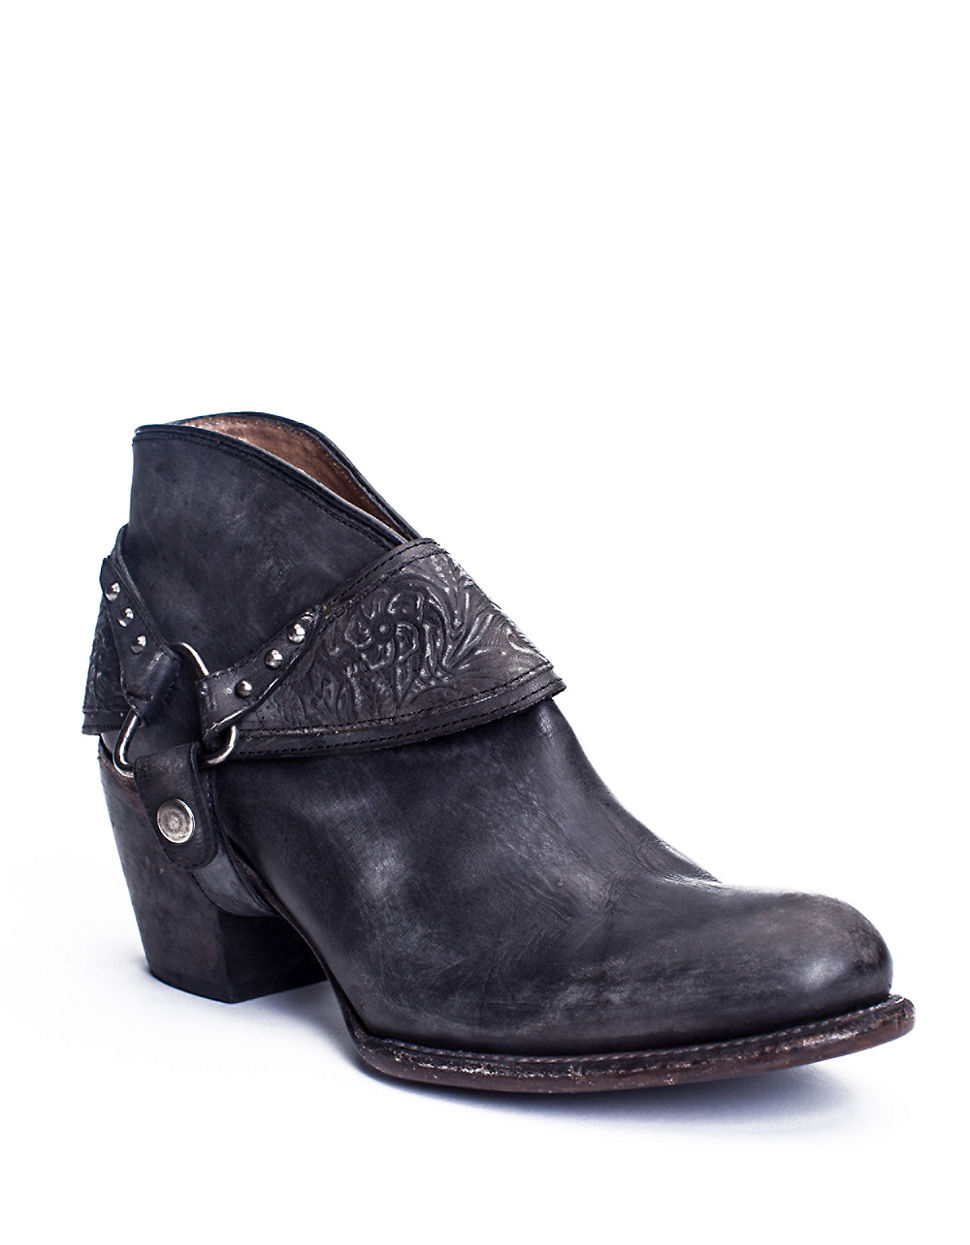 matisse danny leather ankle boots in black lyst